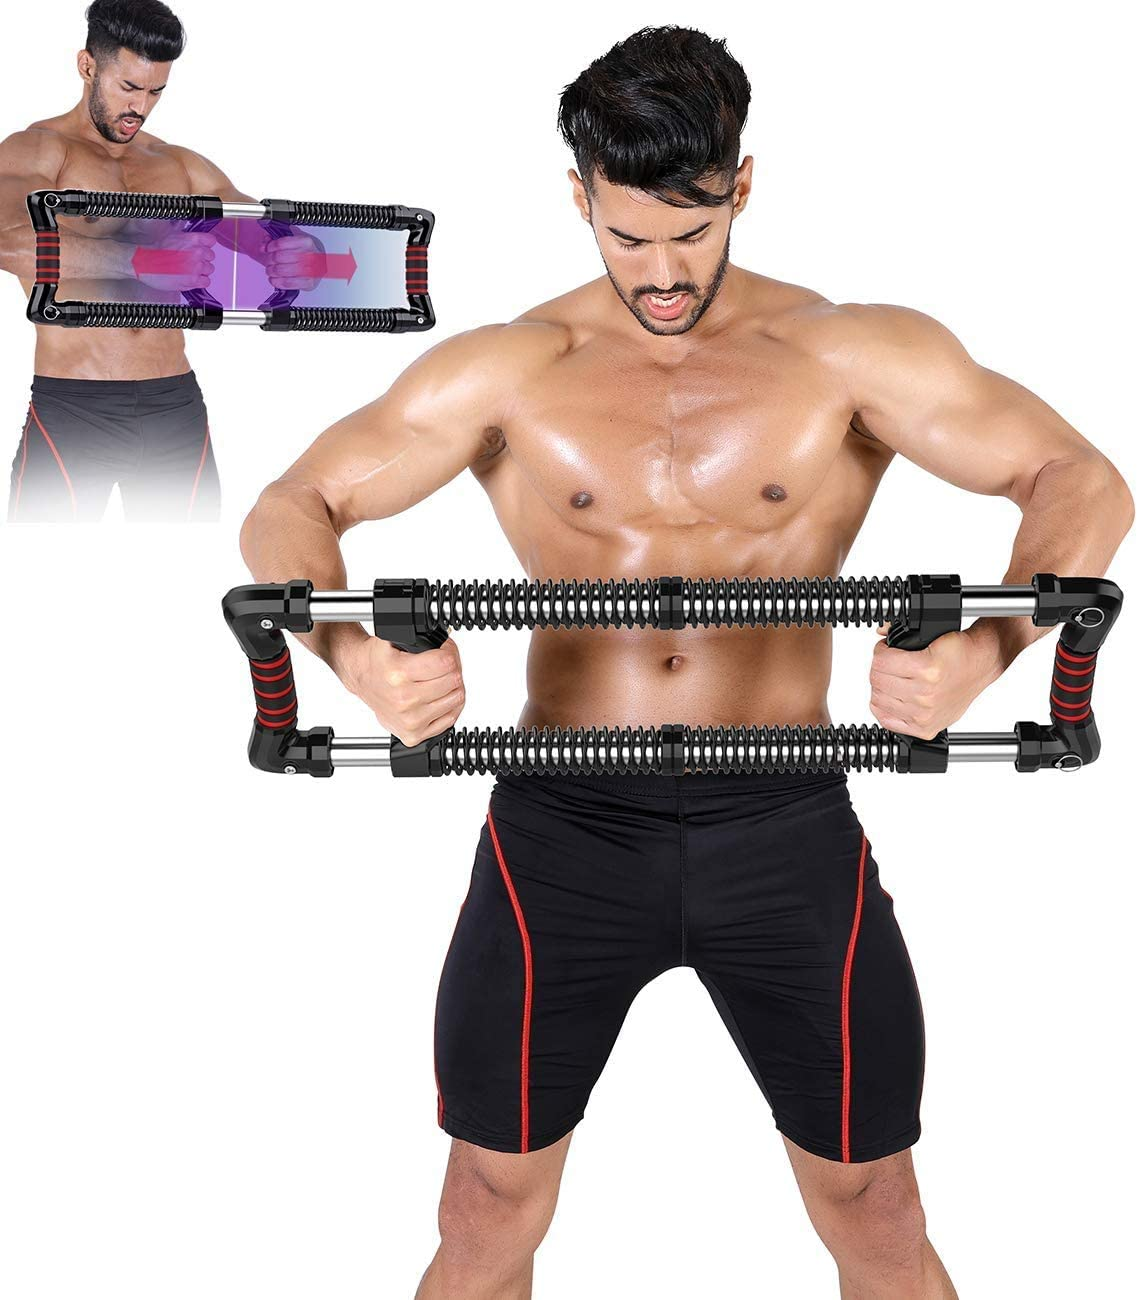 EAST MOUNT Push Down Bar Machine, Chest Expander Workout Equipment, at Home Personal Gym Fitness Upper Body Arm Shoulder Exercise Training Muscle and Strength Builder.